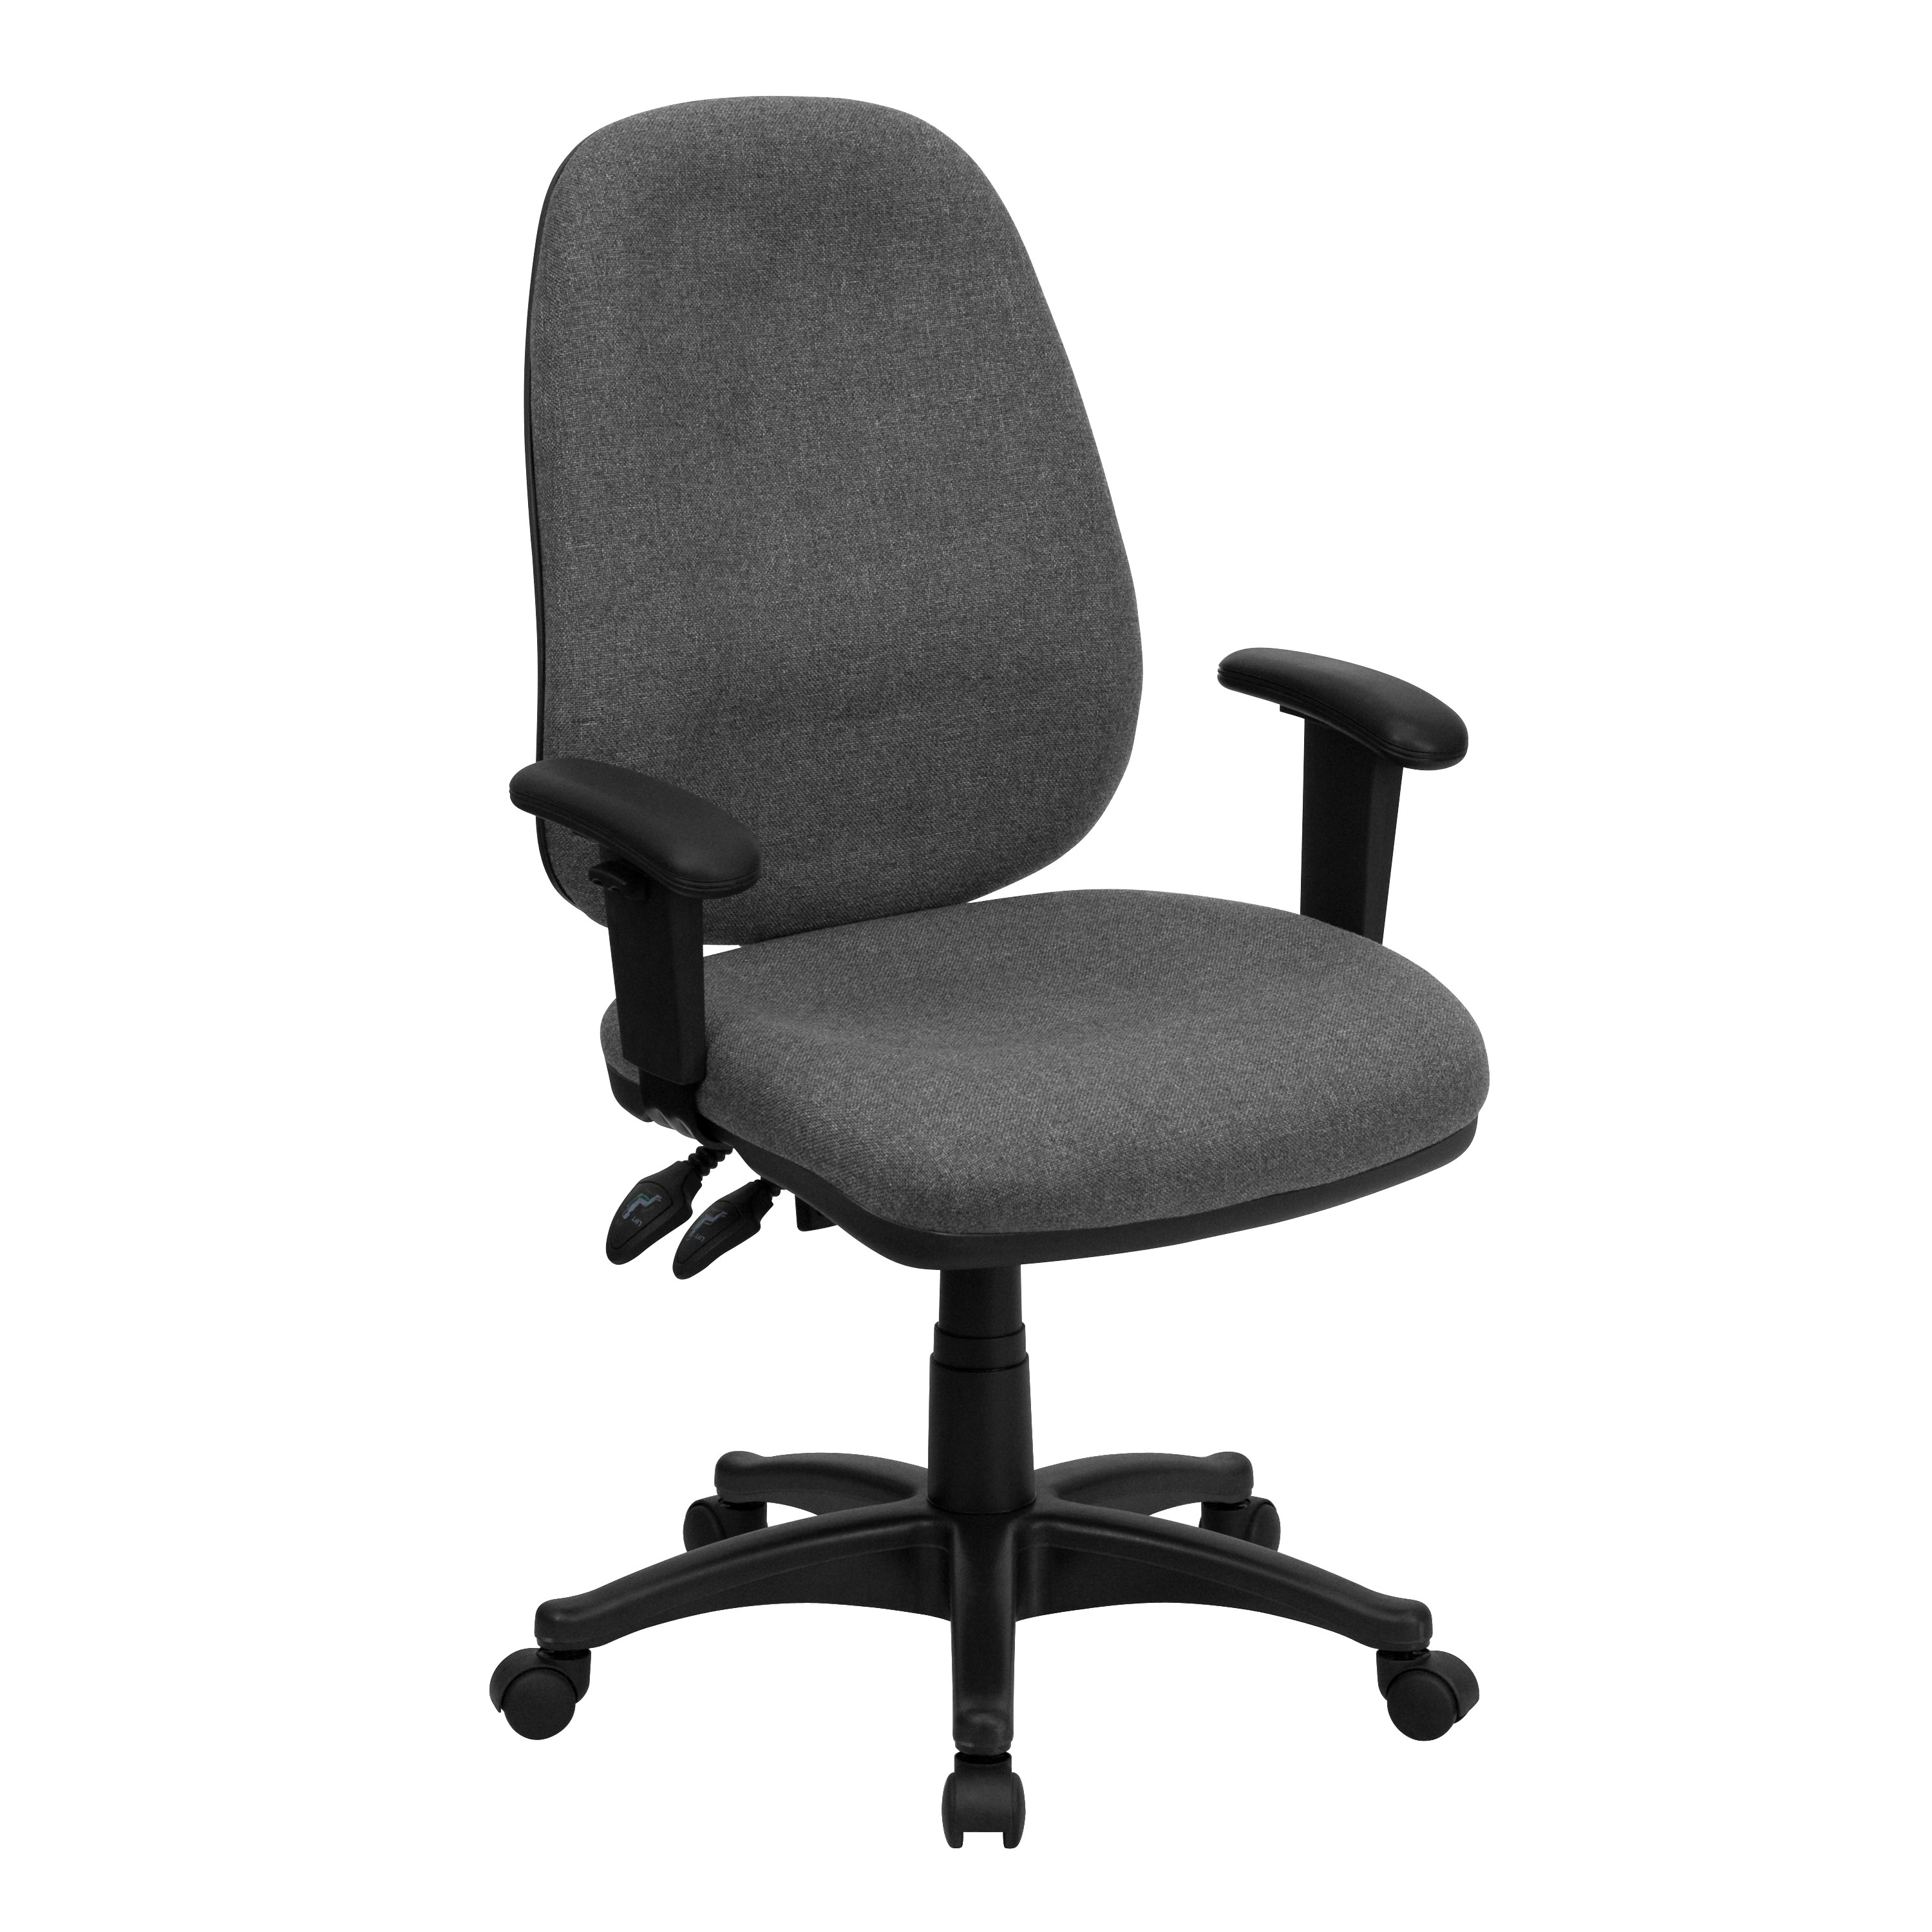 Task Chairs With Arms High Back Gray Fabric Ergonomic Computer Chair With Height